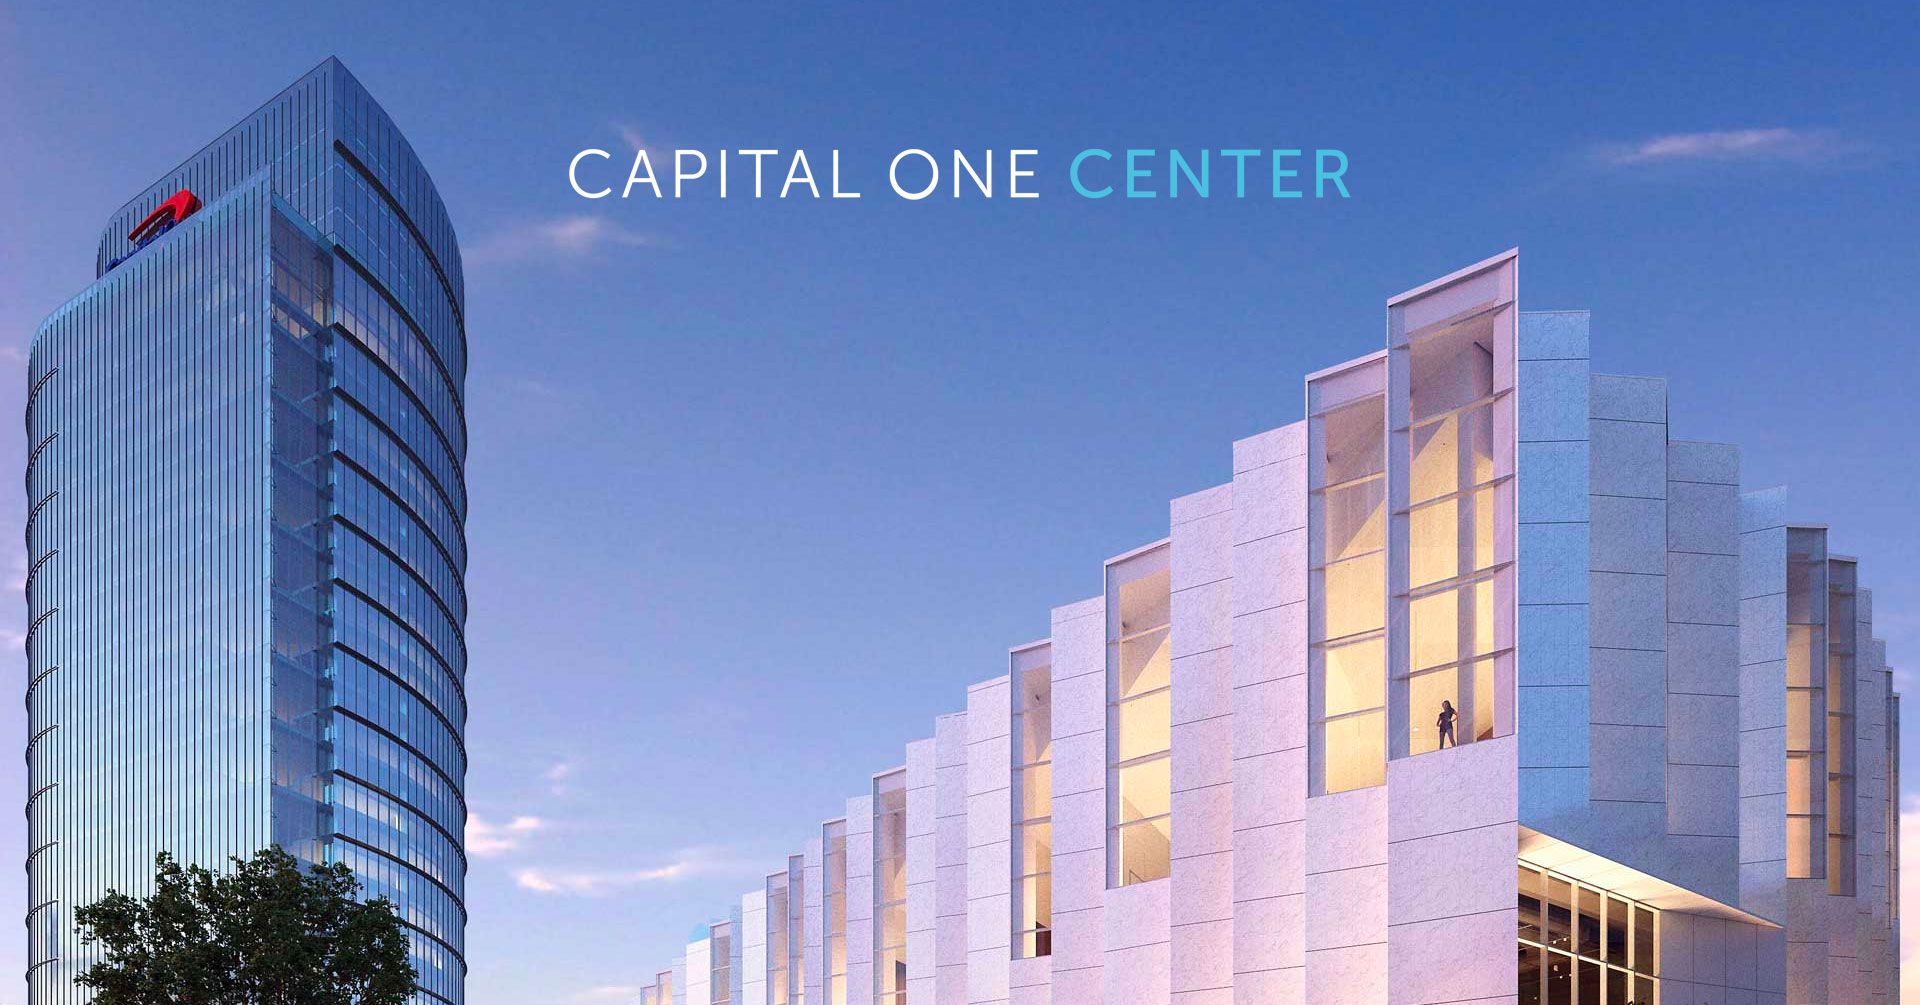 Capital One Center image of Capital One Hall and Capital One Center Ttowers